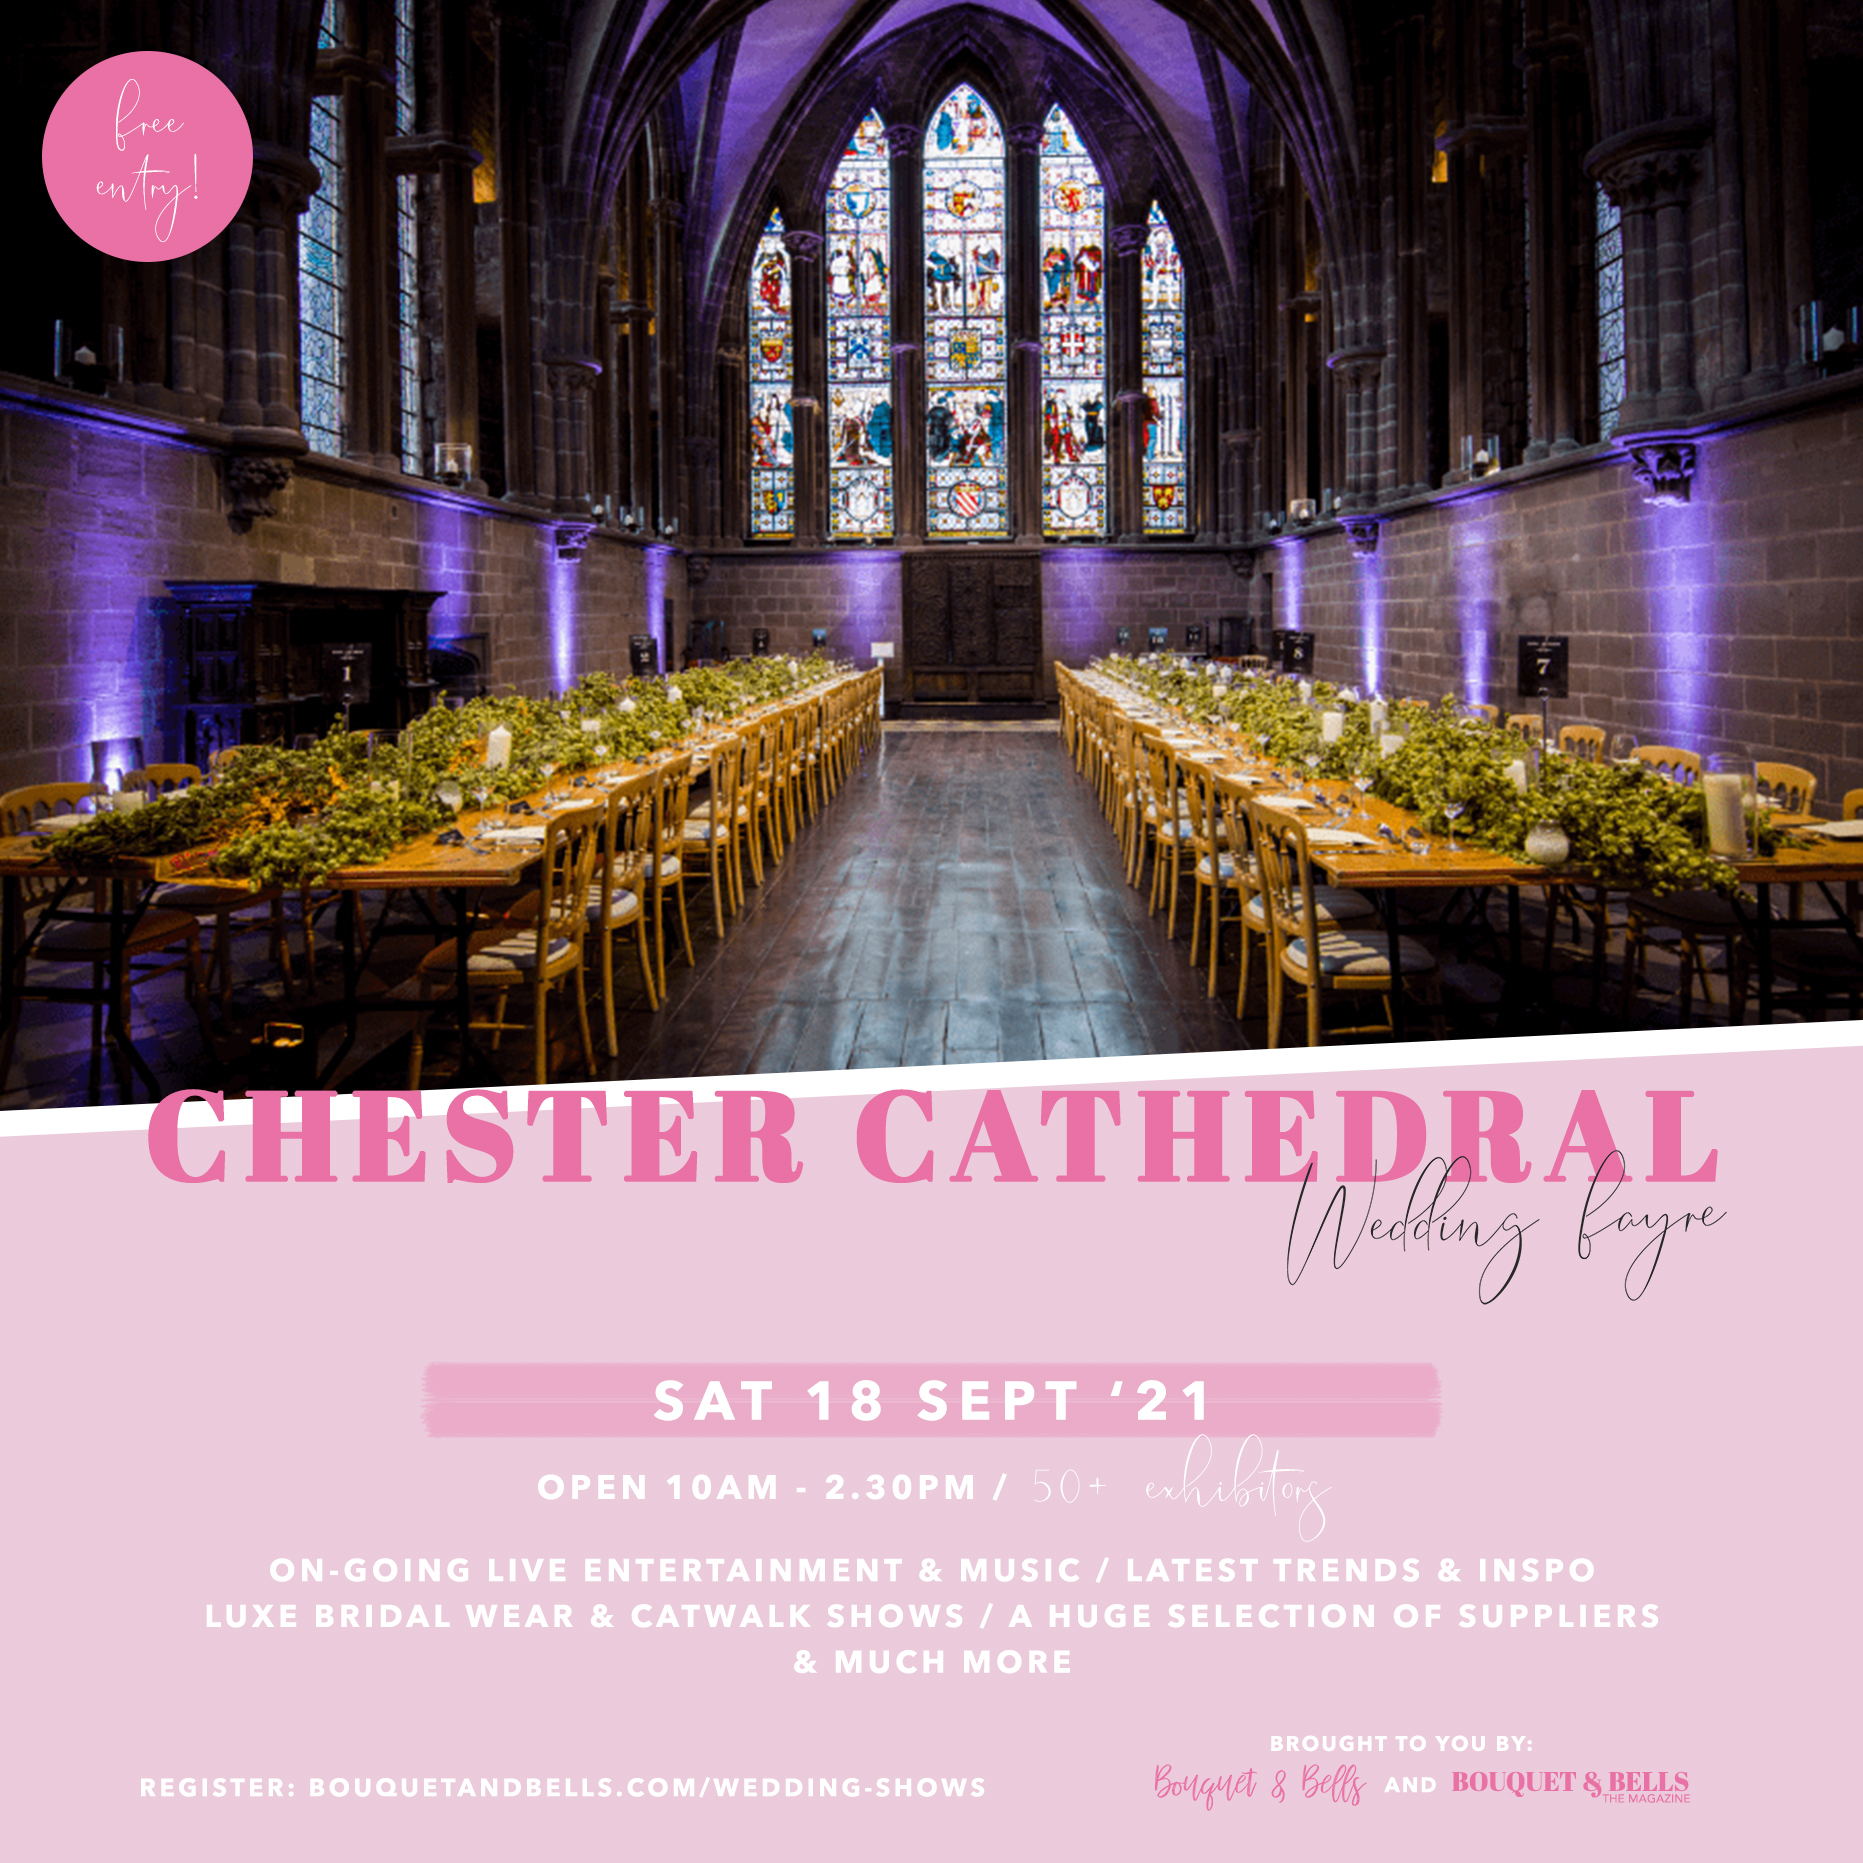 chester-cathedral-wedding-fayre-bouquet-and-bells